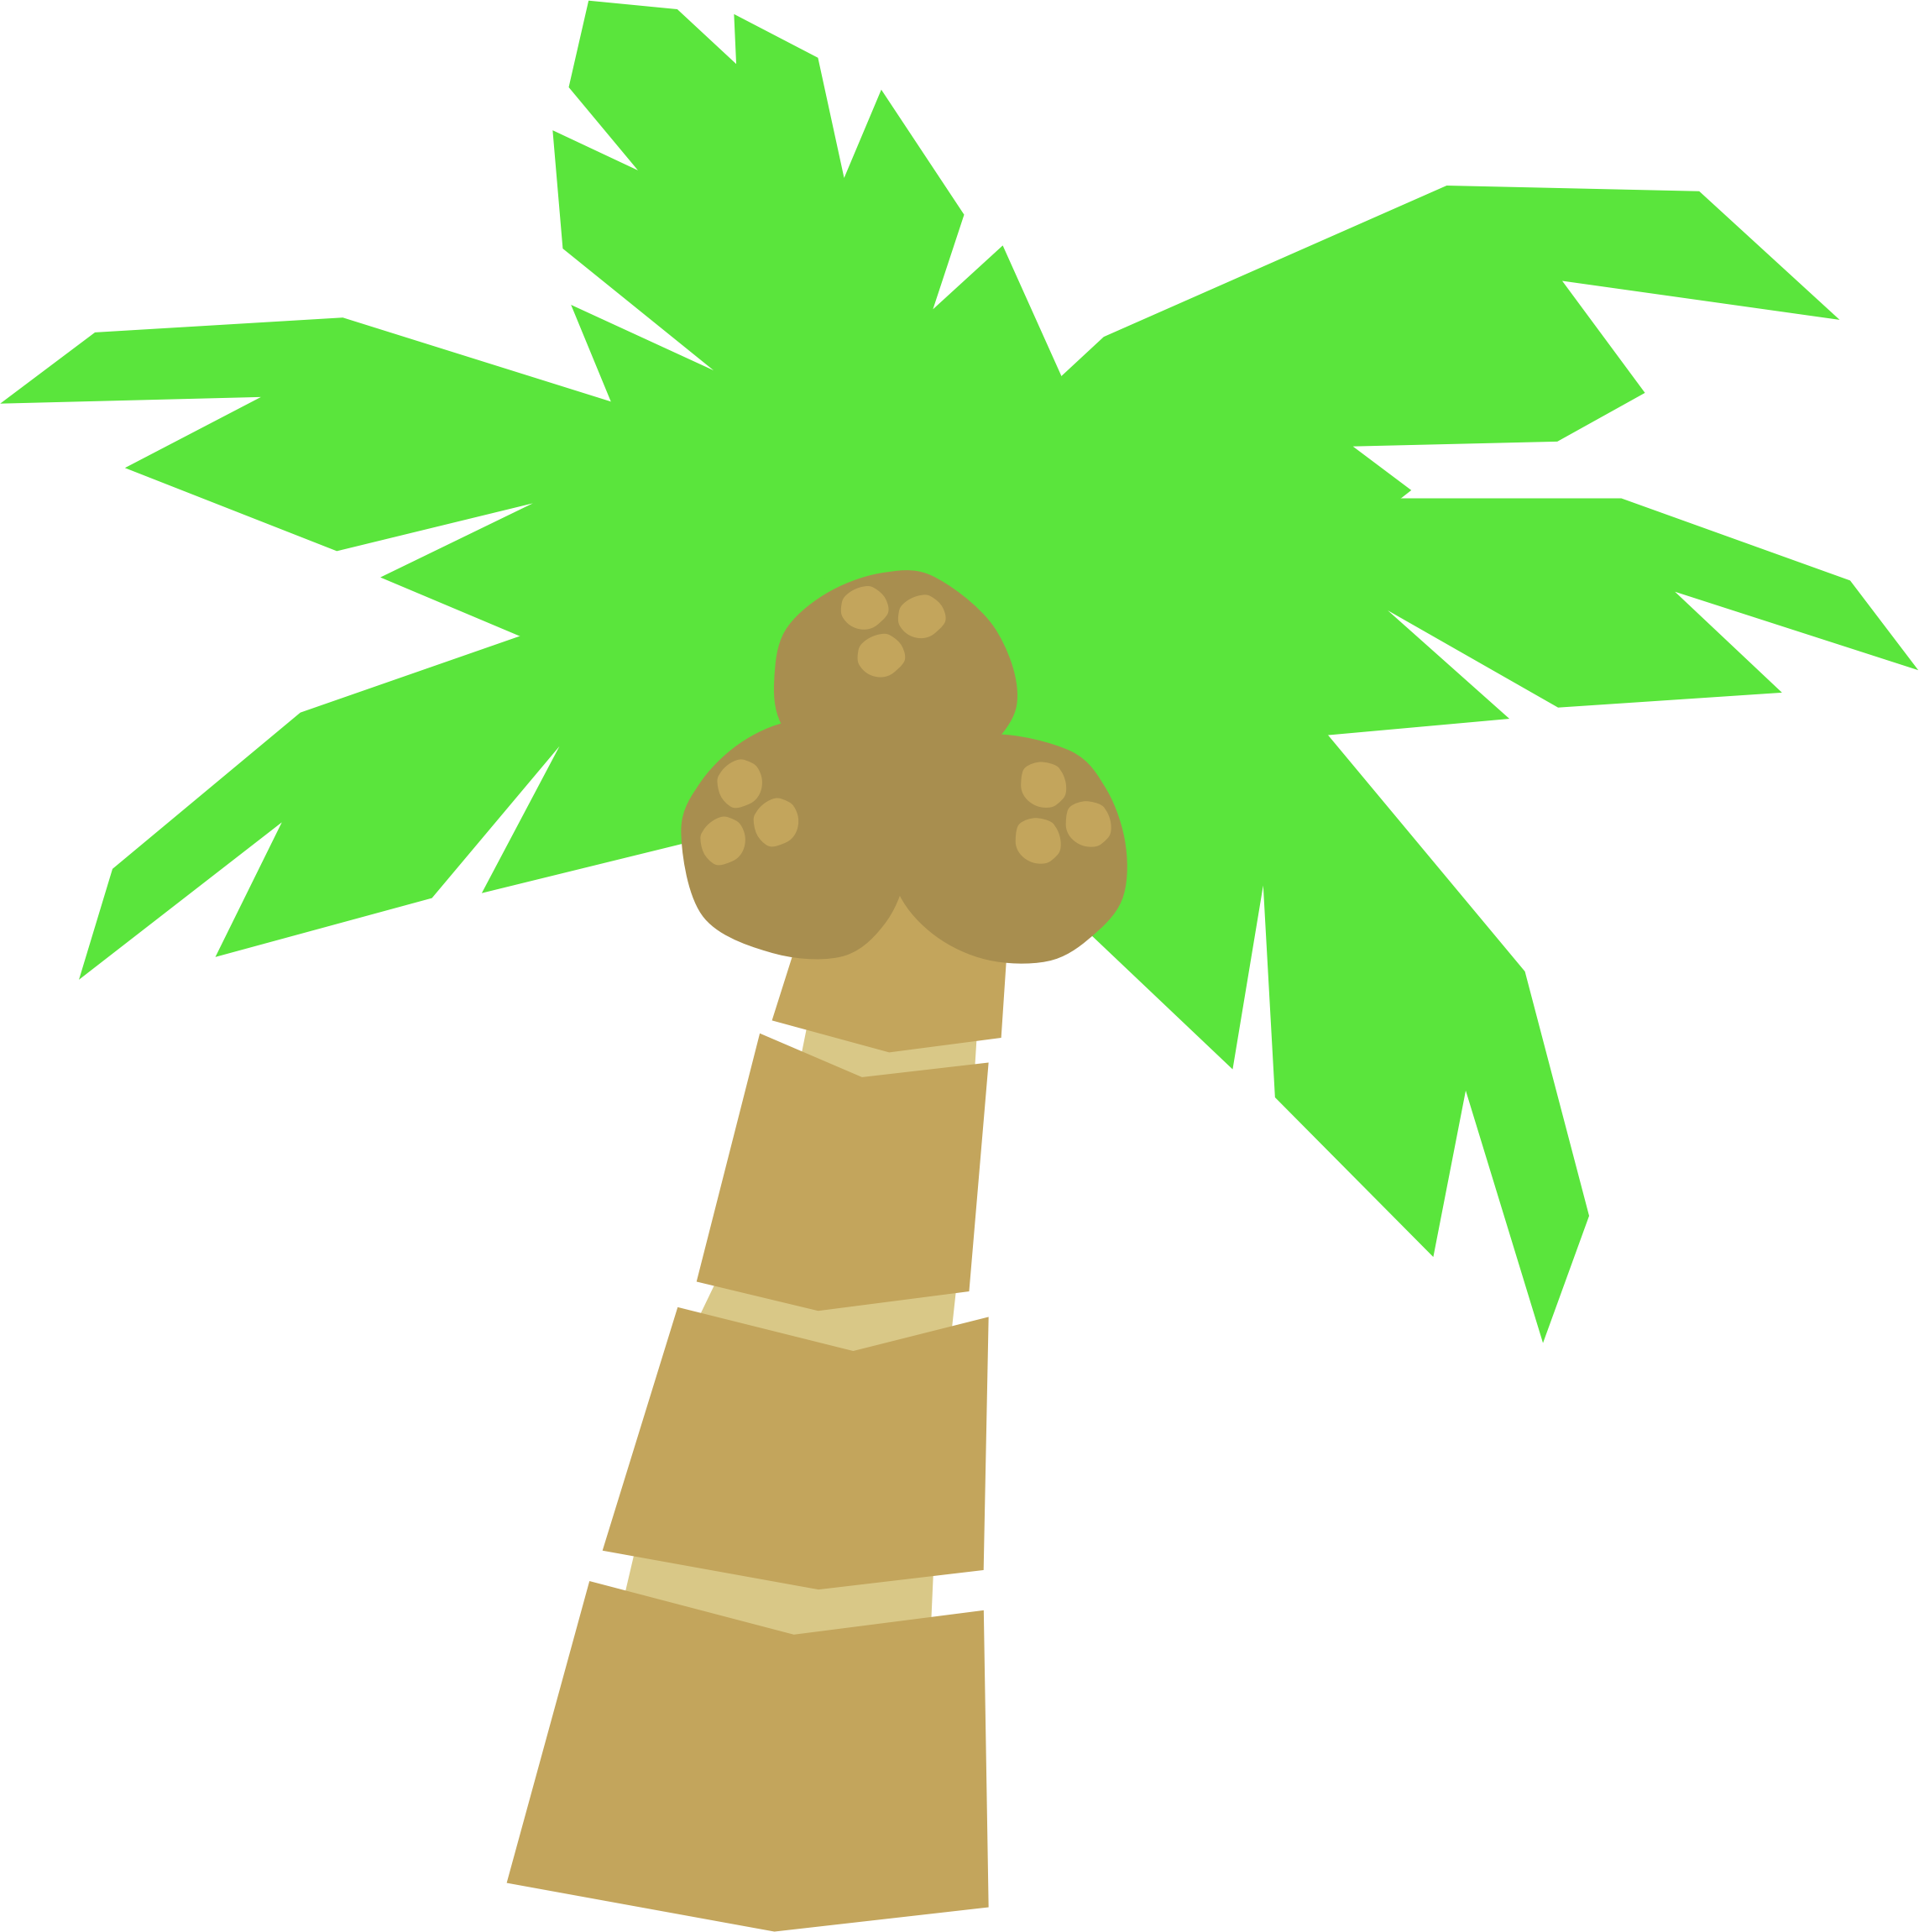 Tree clipart border clipart freeuse download Images of Palm Trees Clip Art Border - #SpaceHero clipart freeuse download